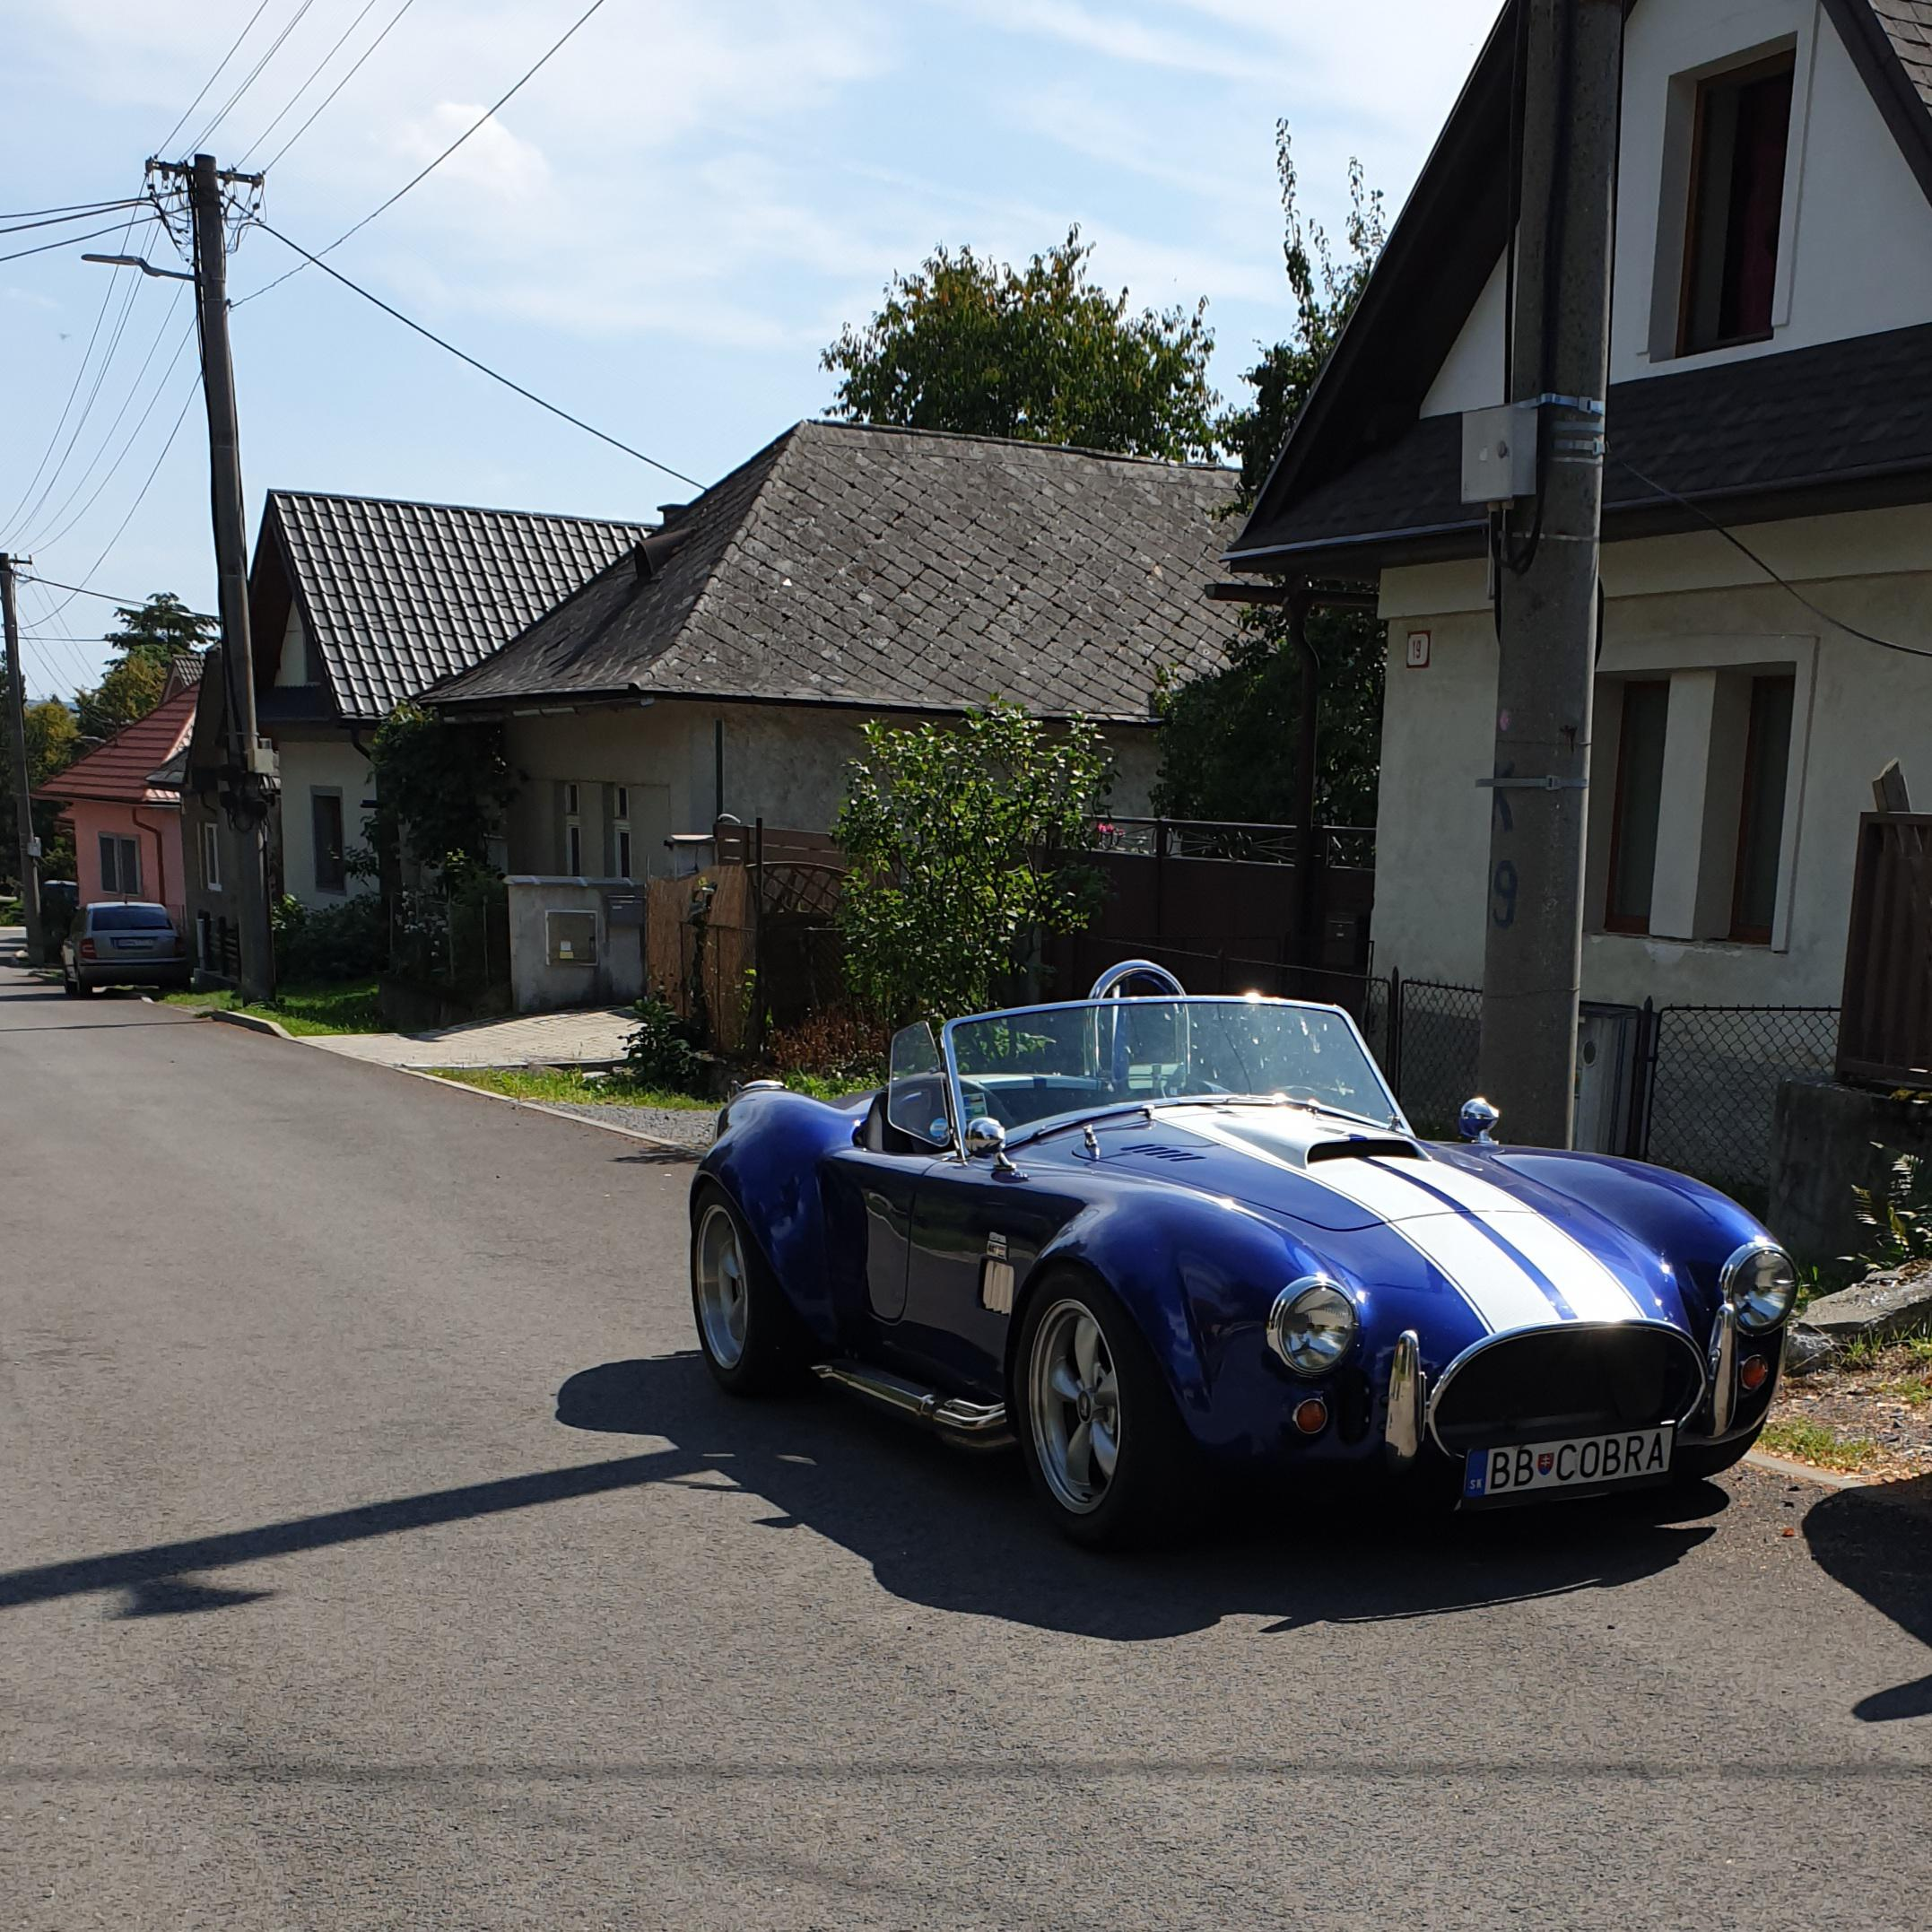 Classic Shelby Cobra. Cars like this are really rare in my country.